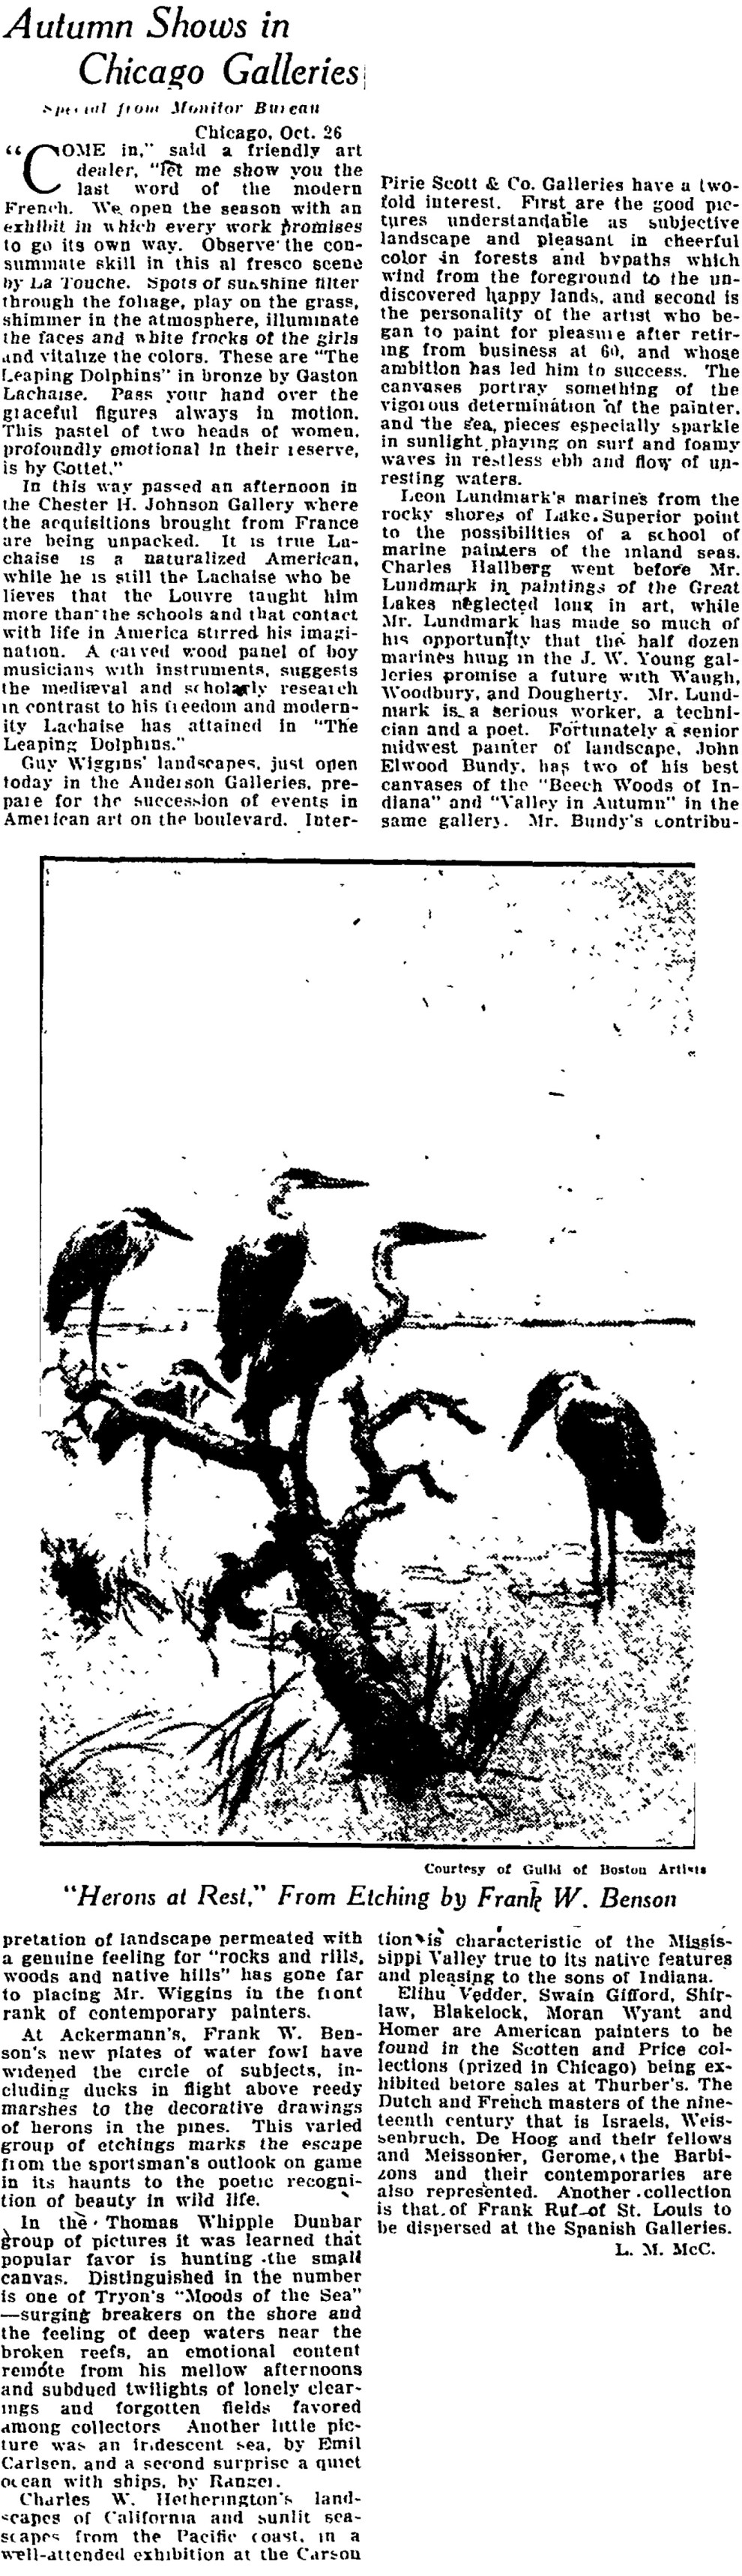 "The Christian Science Monitor, New York, NY, ""Autumn Shows in Chicago Galleries"", October 29, 1923, page 14, not illustrated"